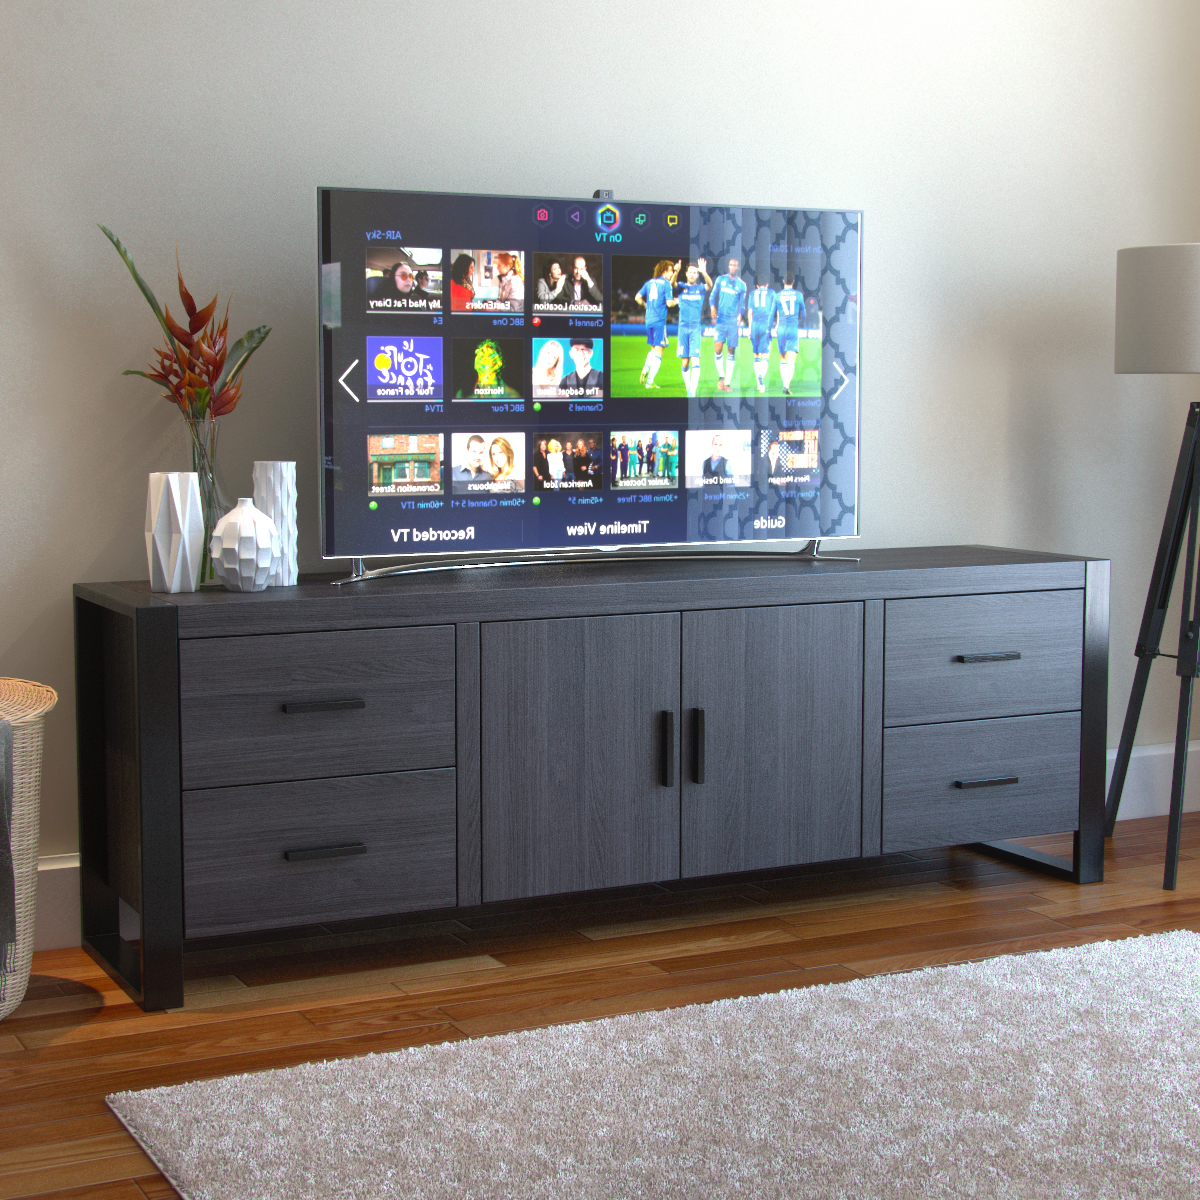 Annabelle Blue 70 Inch Tv Stands With Regard To Trendy Furniture: Milan 70 Inch Tv Stand In Charcoal And Black (Gallery 6 of 20)